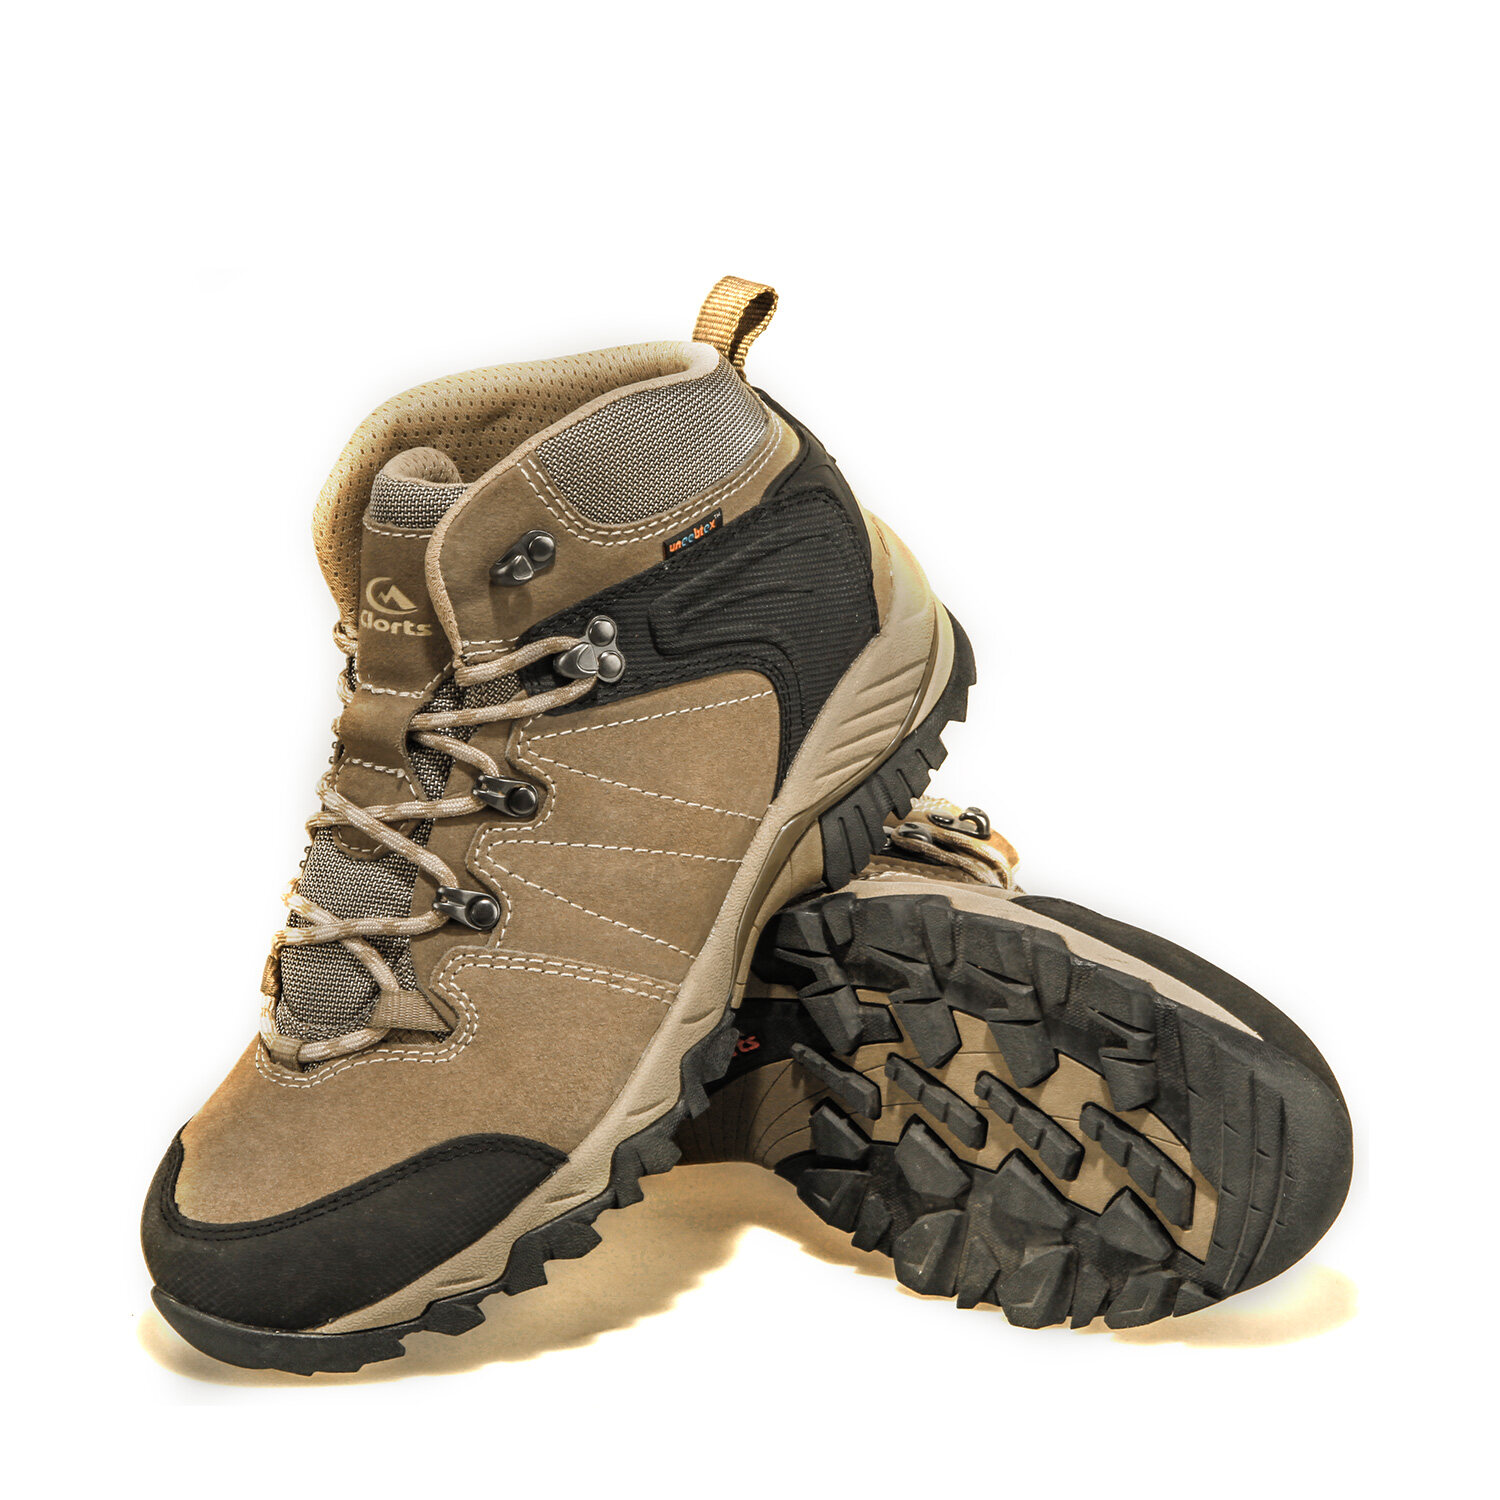 3845c6956bb Clorts Men's Hiker Leather GTX Waterproof Hiking Boot Outdoor Backpacking  Shoe HKM822G